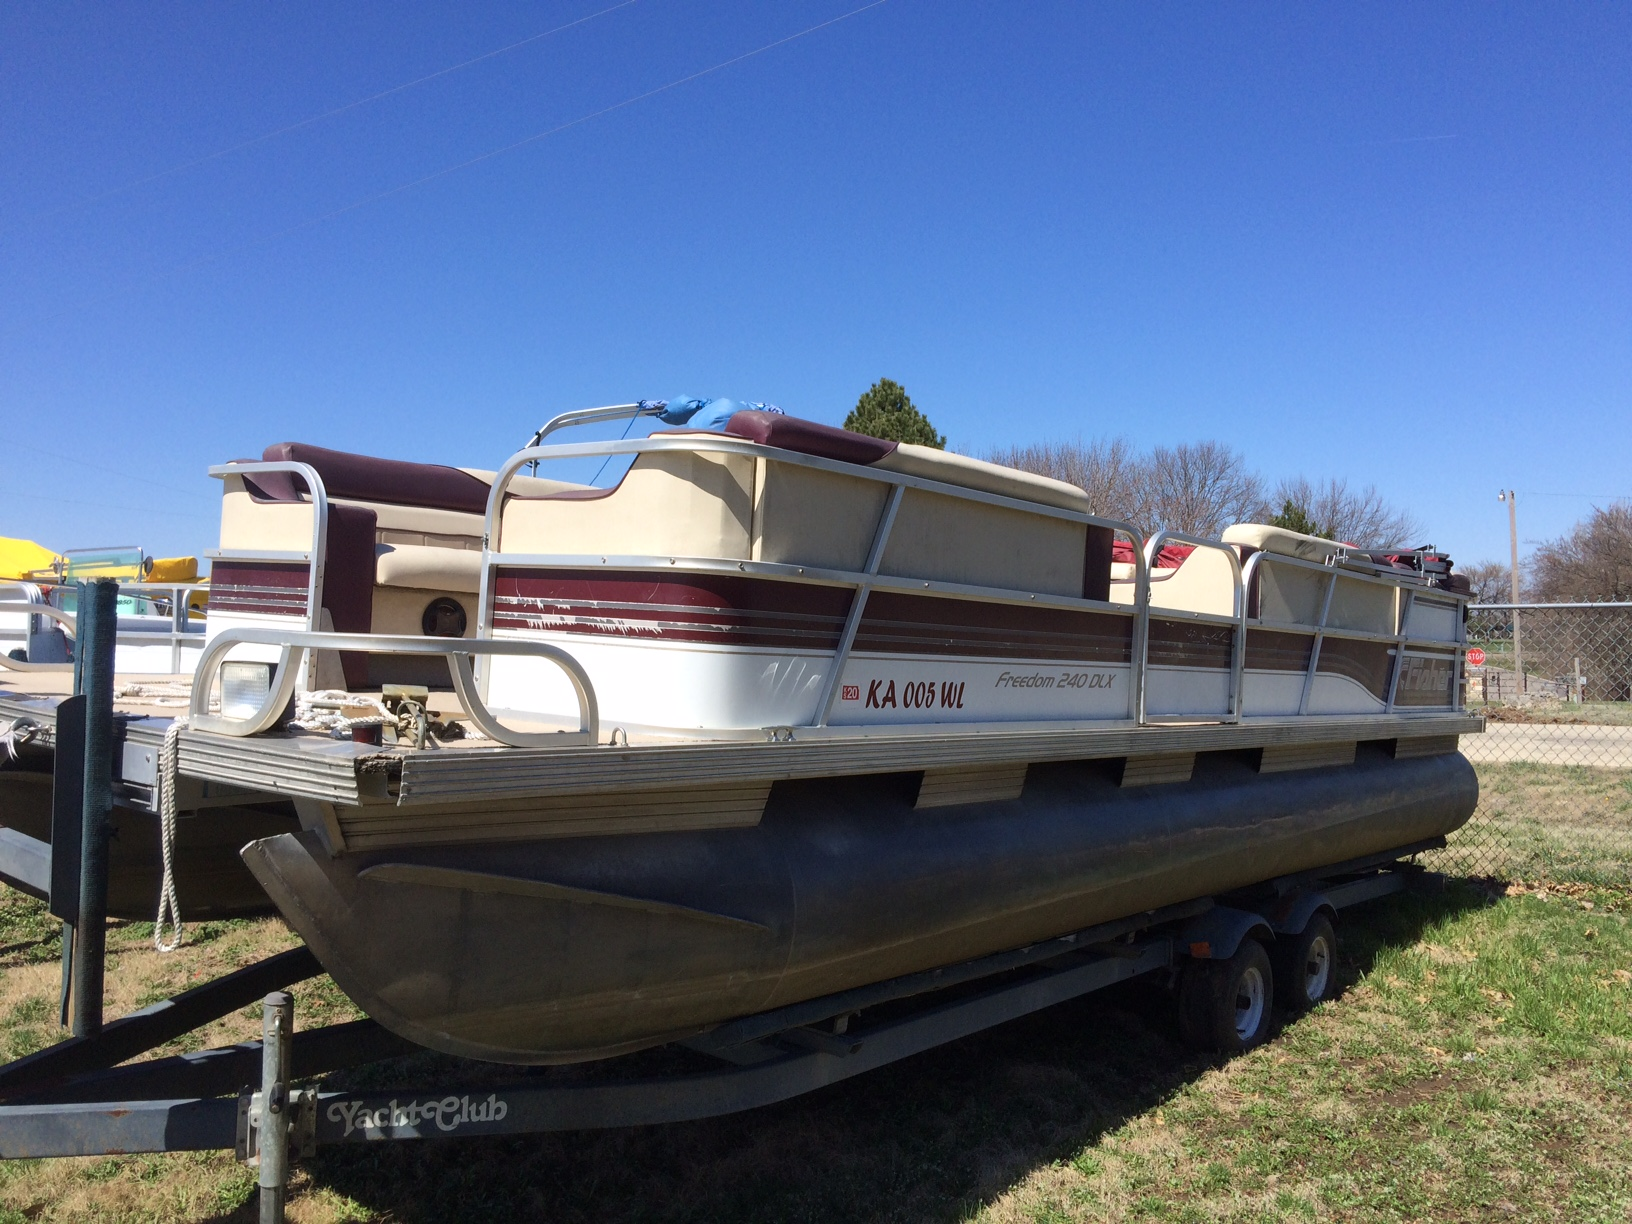 Boat Rental - Kansas City | Council Grove Marina - Call Now!